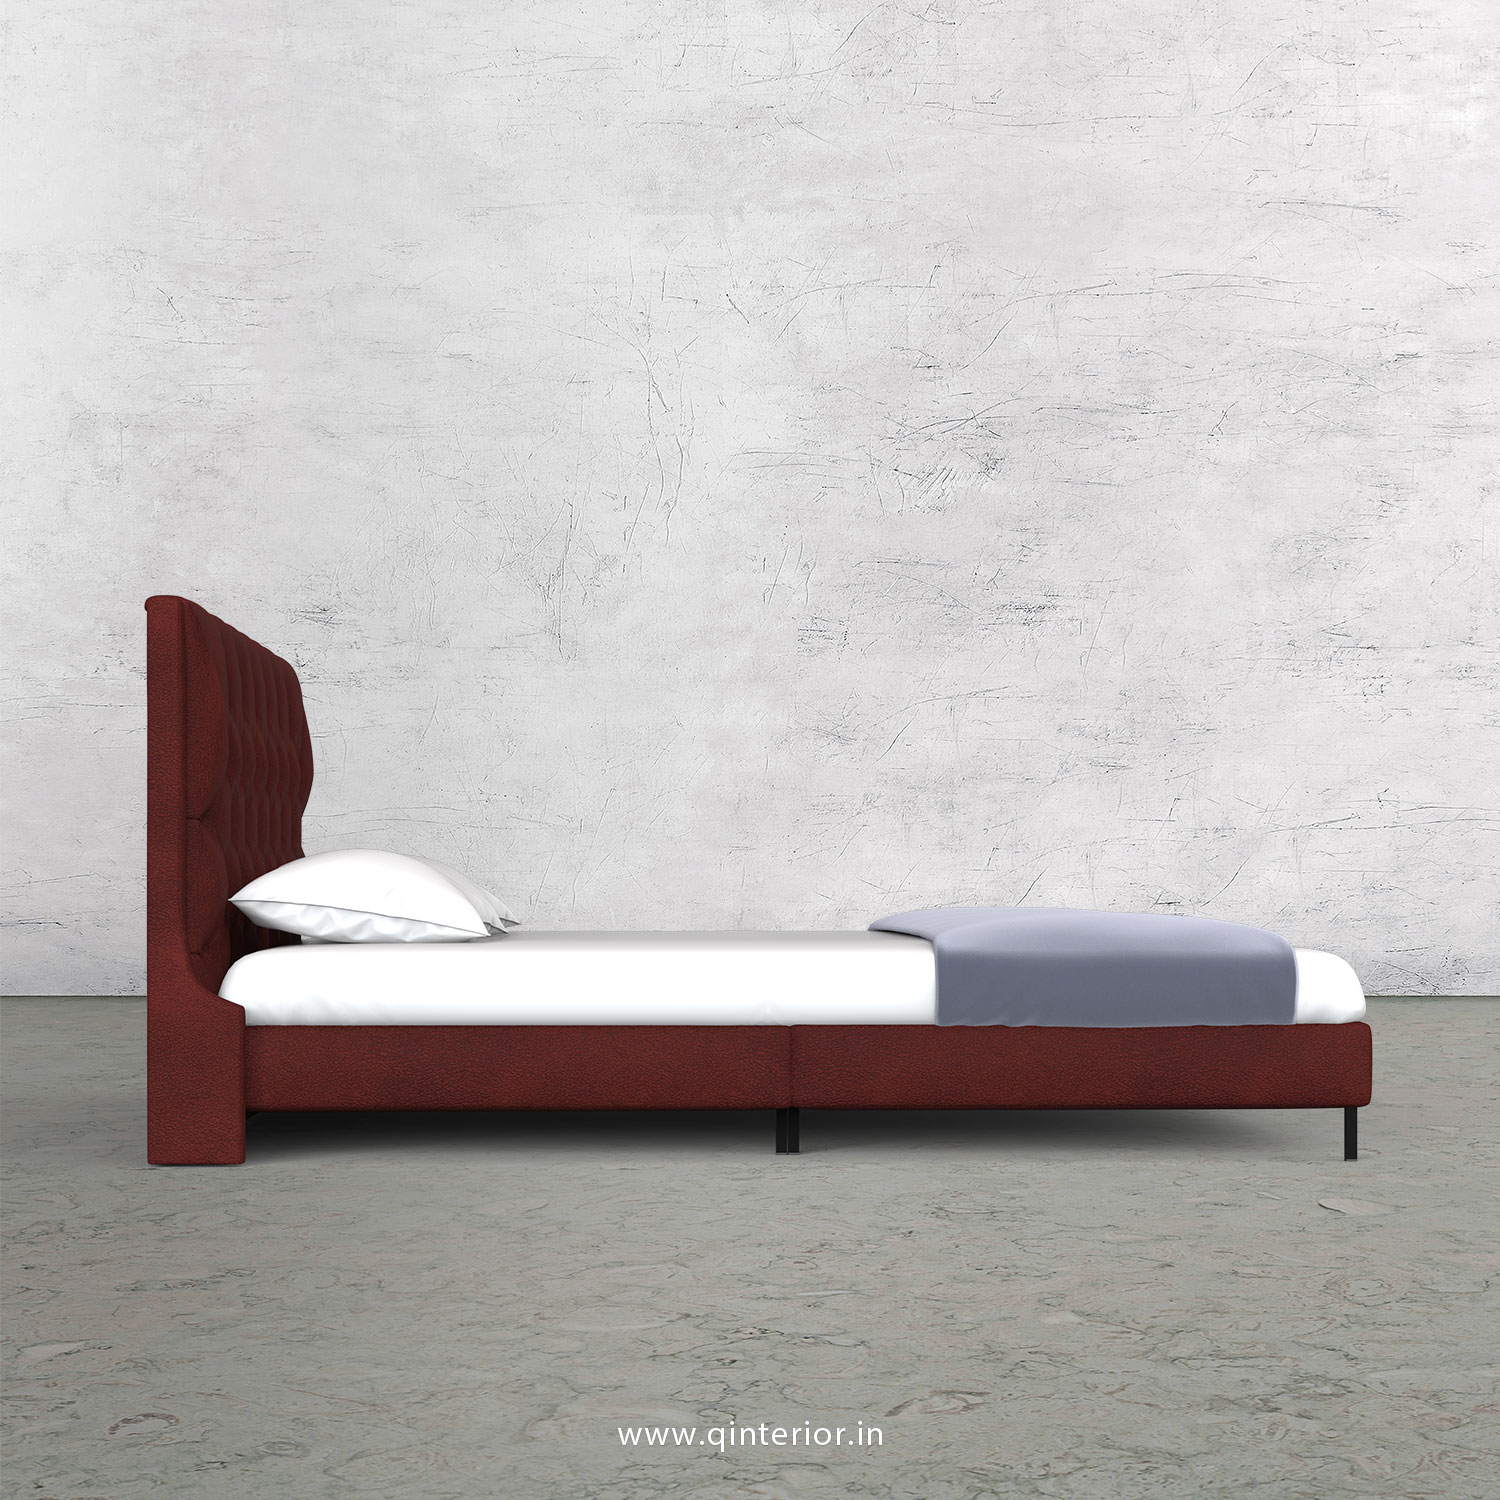 Scorpius Queen Size Bed with Fab Leather Fabric - QBD003 FL08